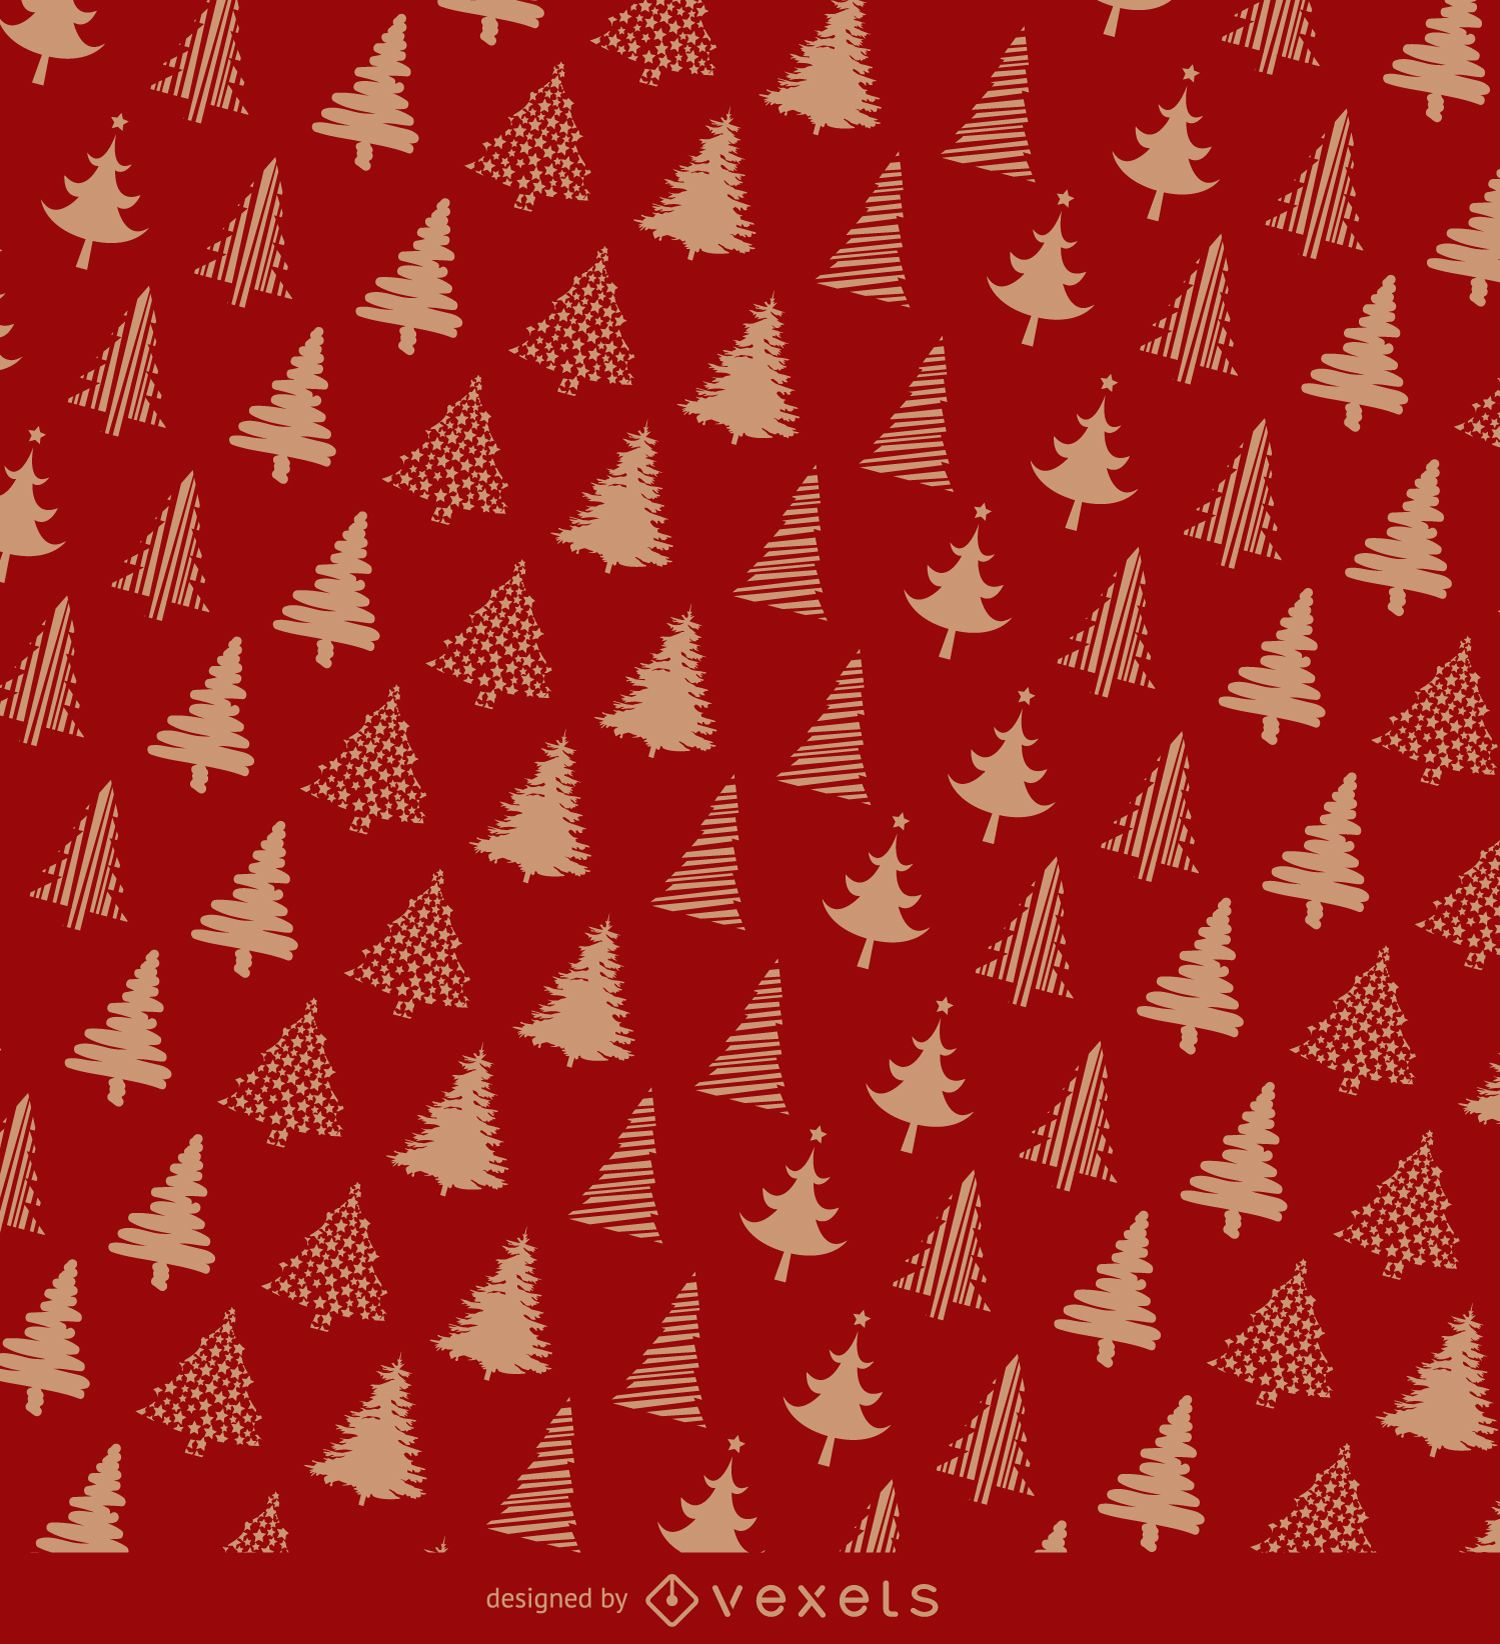 Christmas Wrapping Paper Design Vector Download